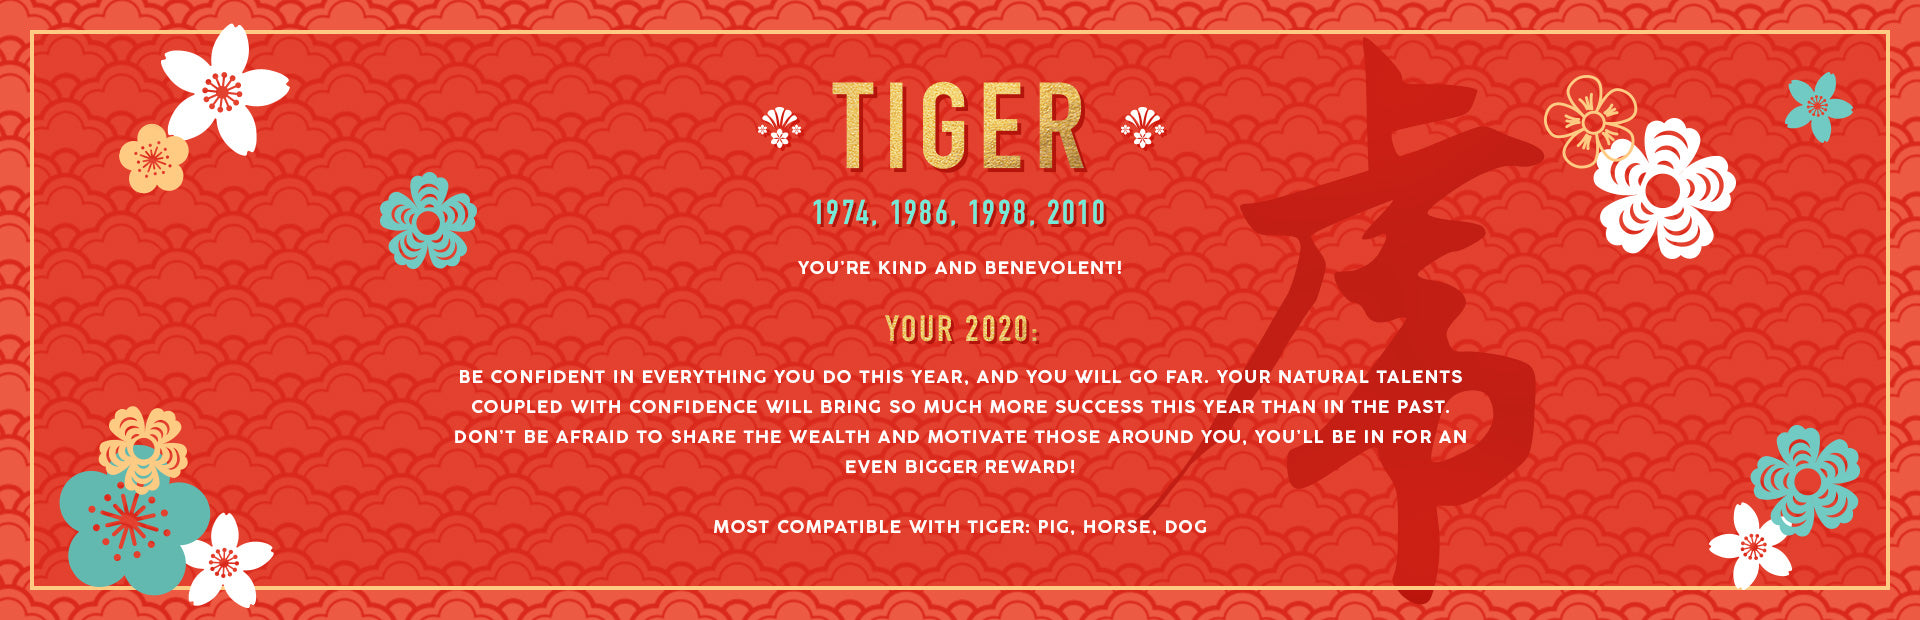 Tiger Lunar New Year Collection Banner Image